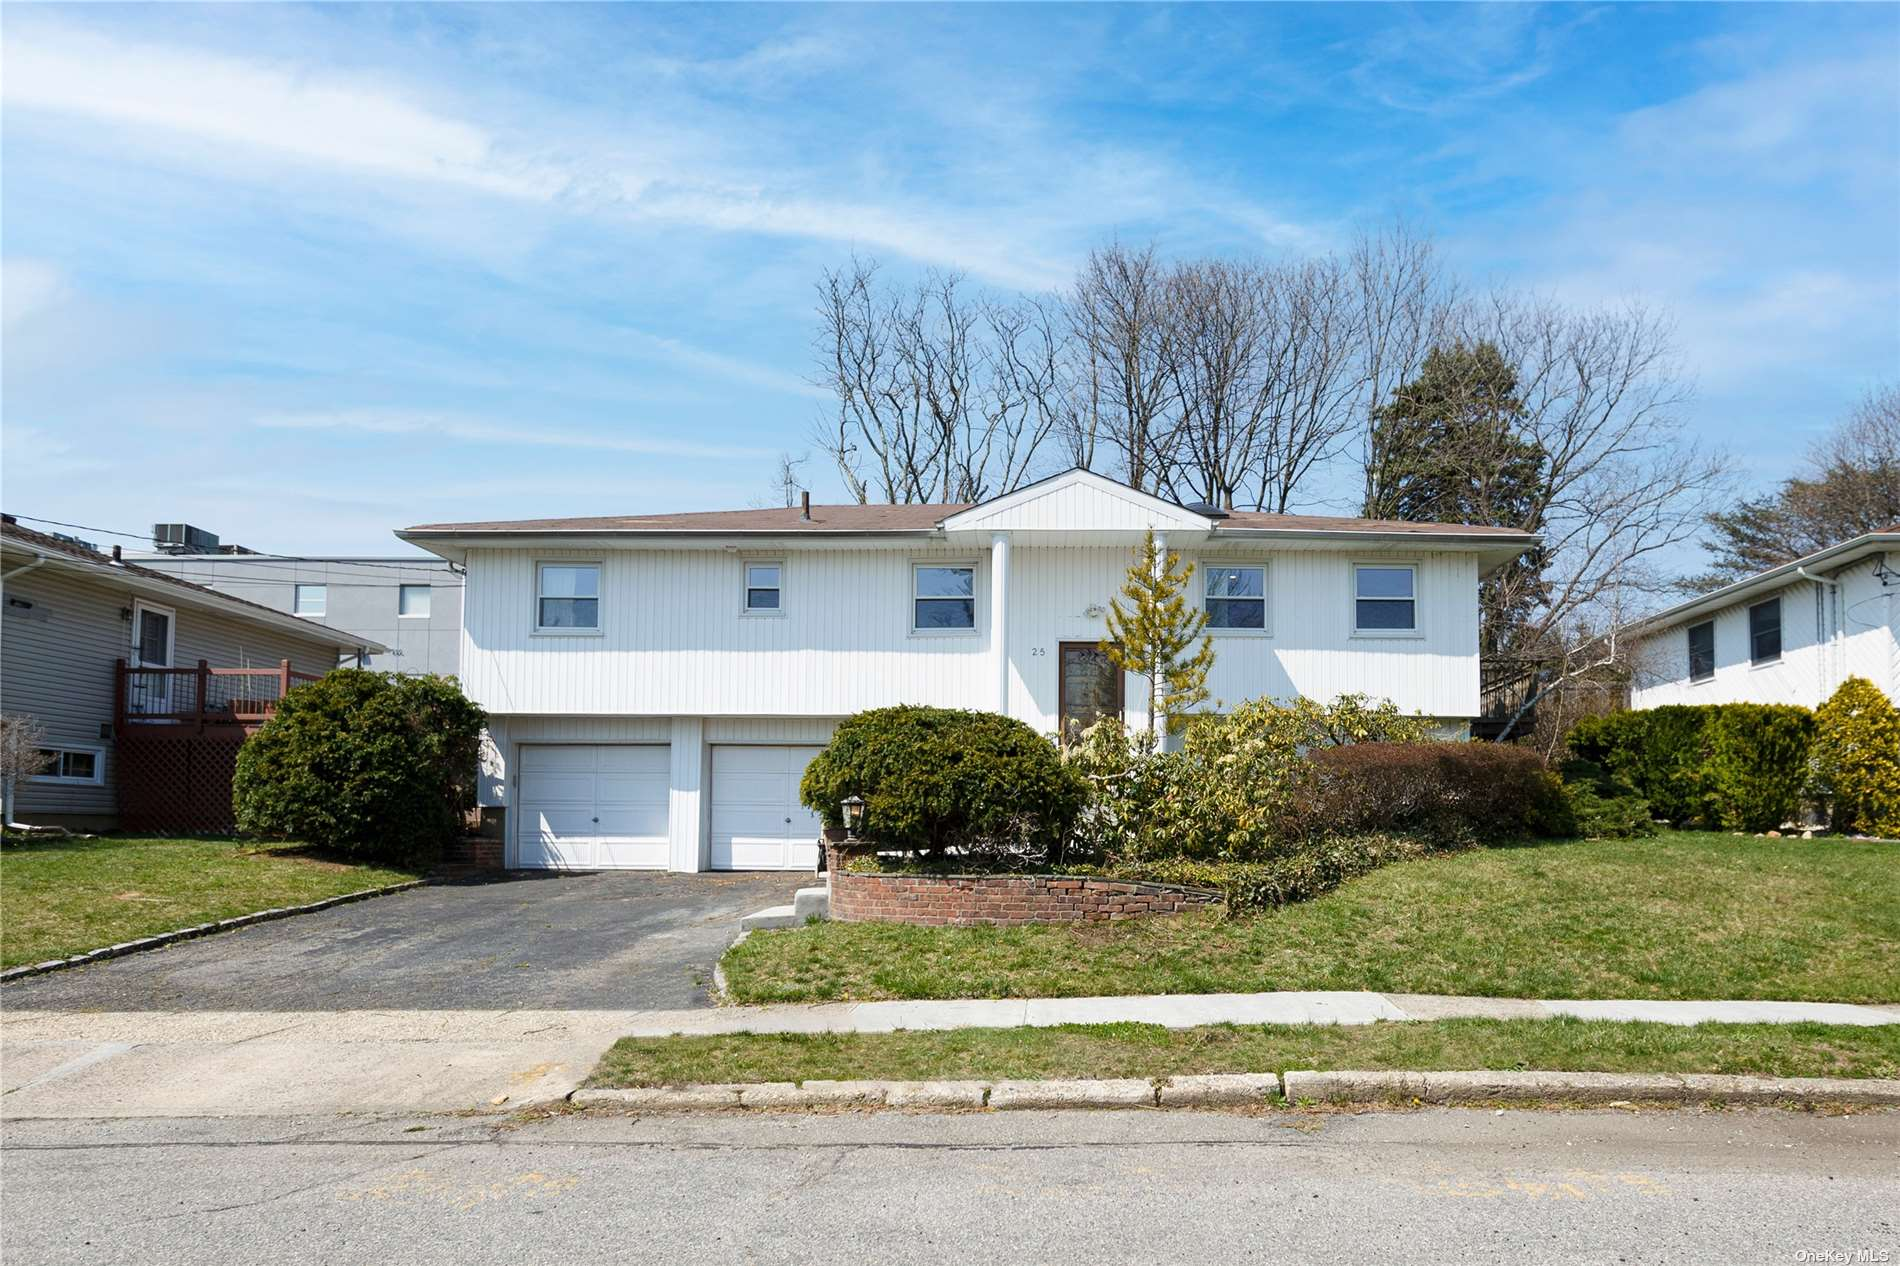 25 RUSSELL PARK ROAD, SYOSSET, NY 11791